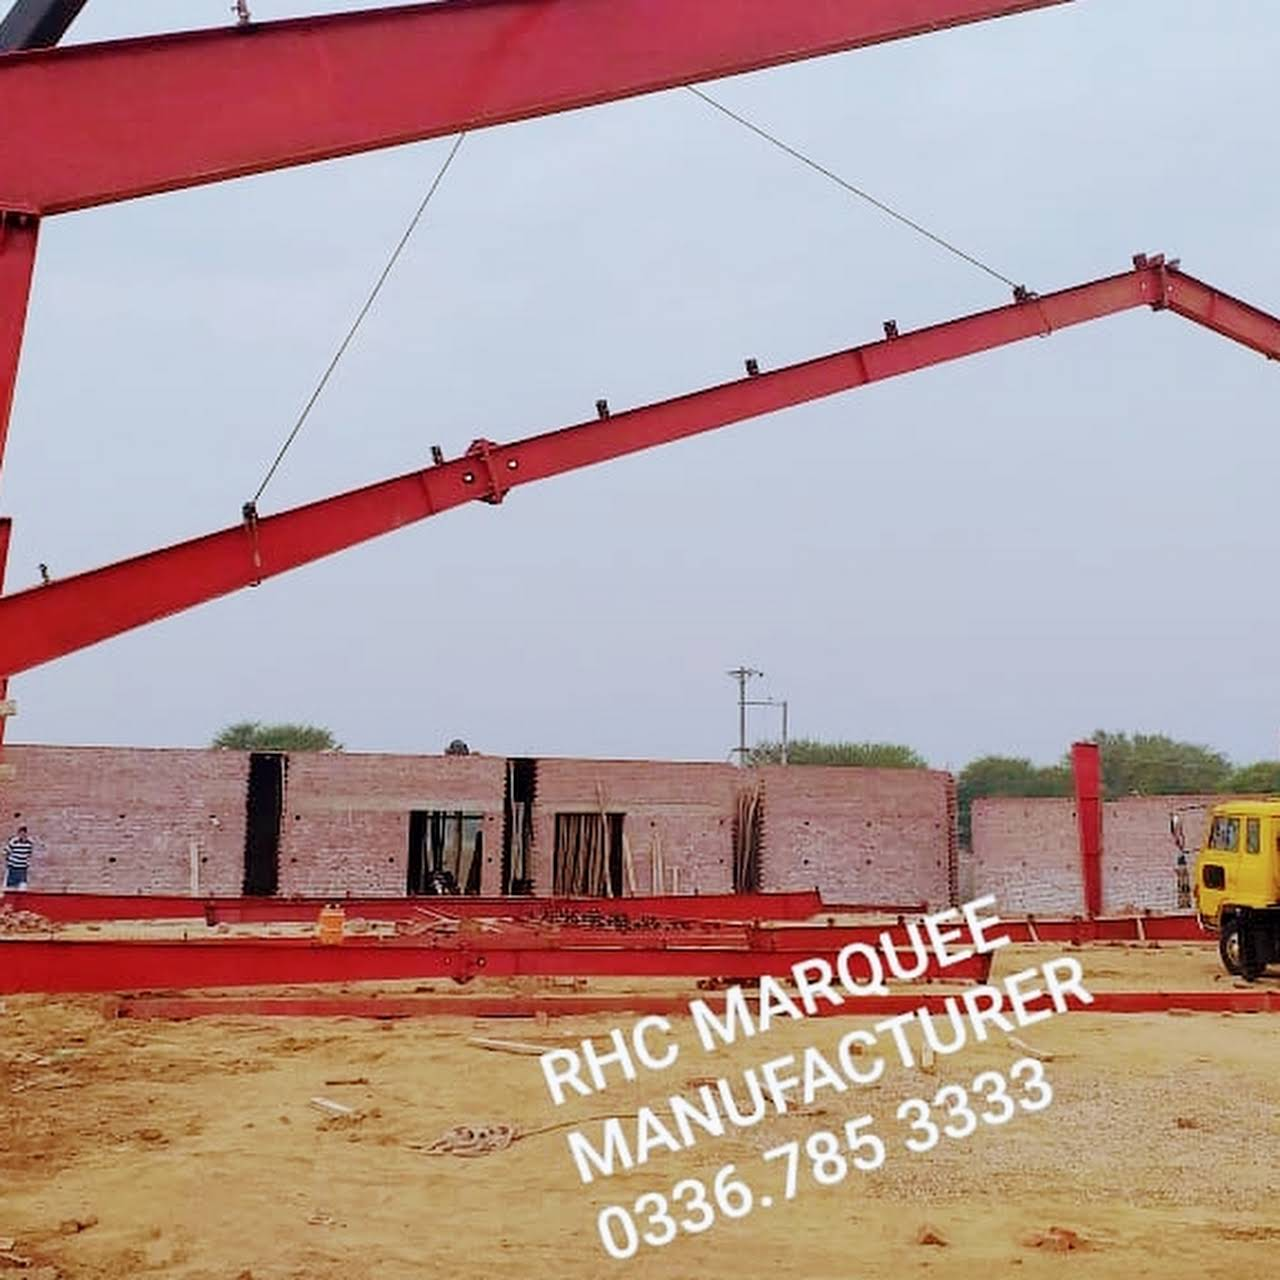 RHC Marquee Manufacturer - Marquee Manufacturing in Lahore